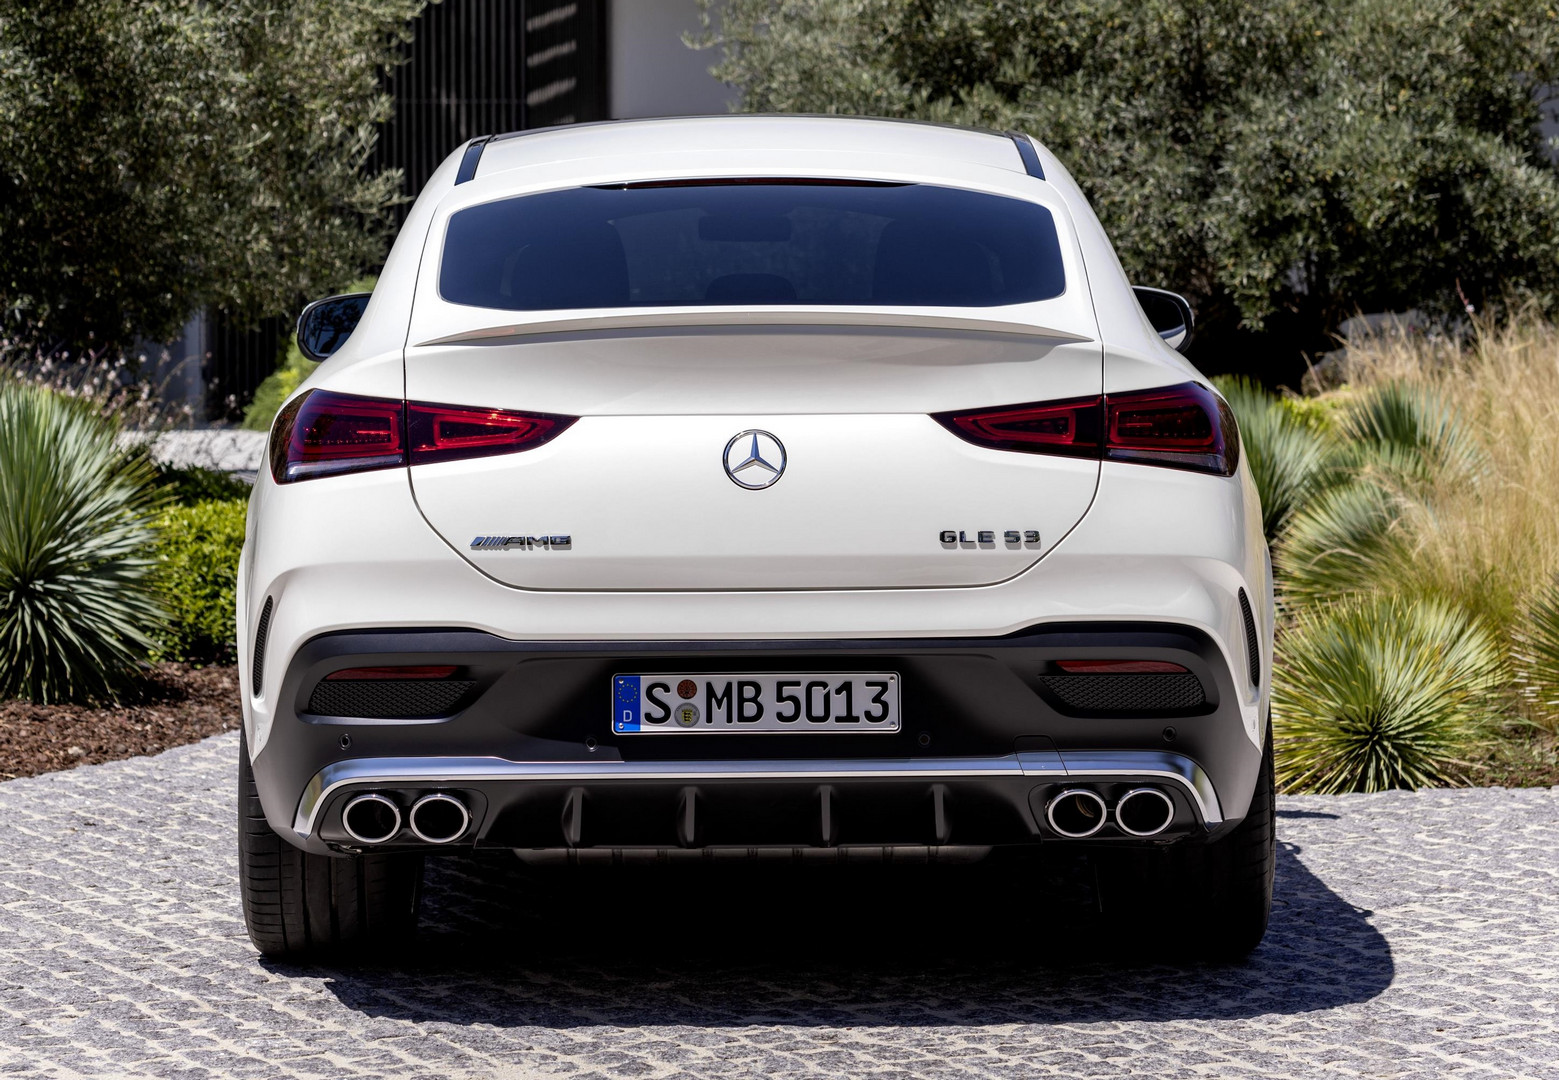 Mercedes-AMG GLE 53 Coupe Rear Lights